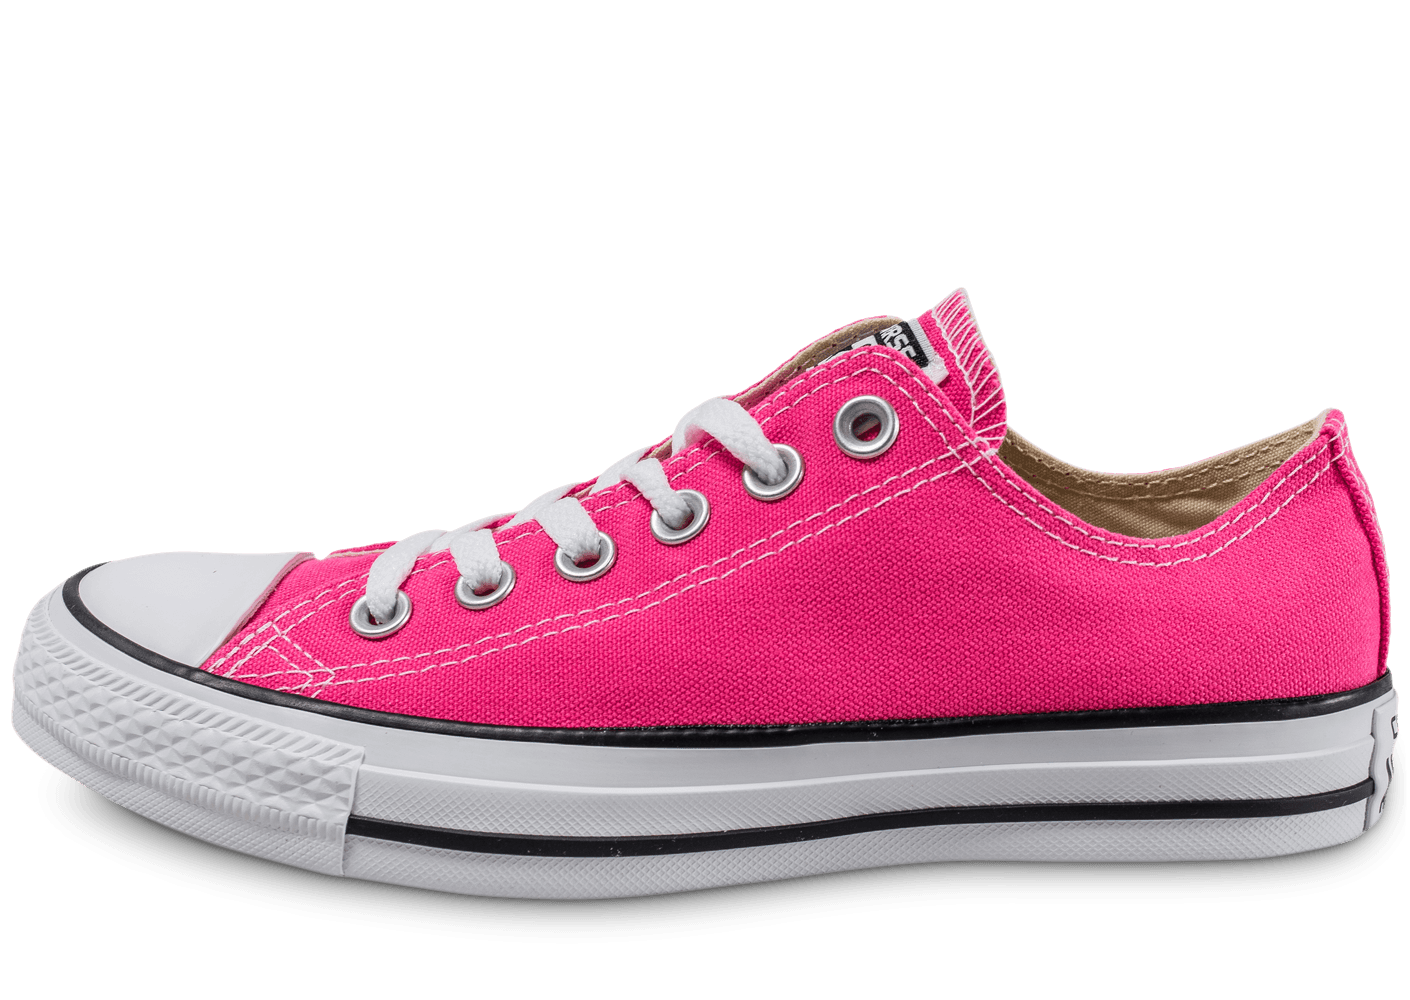 converse chuck taylor all star low rose chaussures black friday chausport. Black Bedroom Furniture Sets. Home Design Ideas